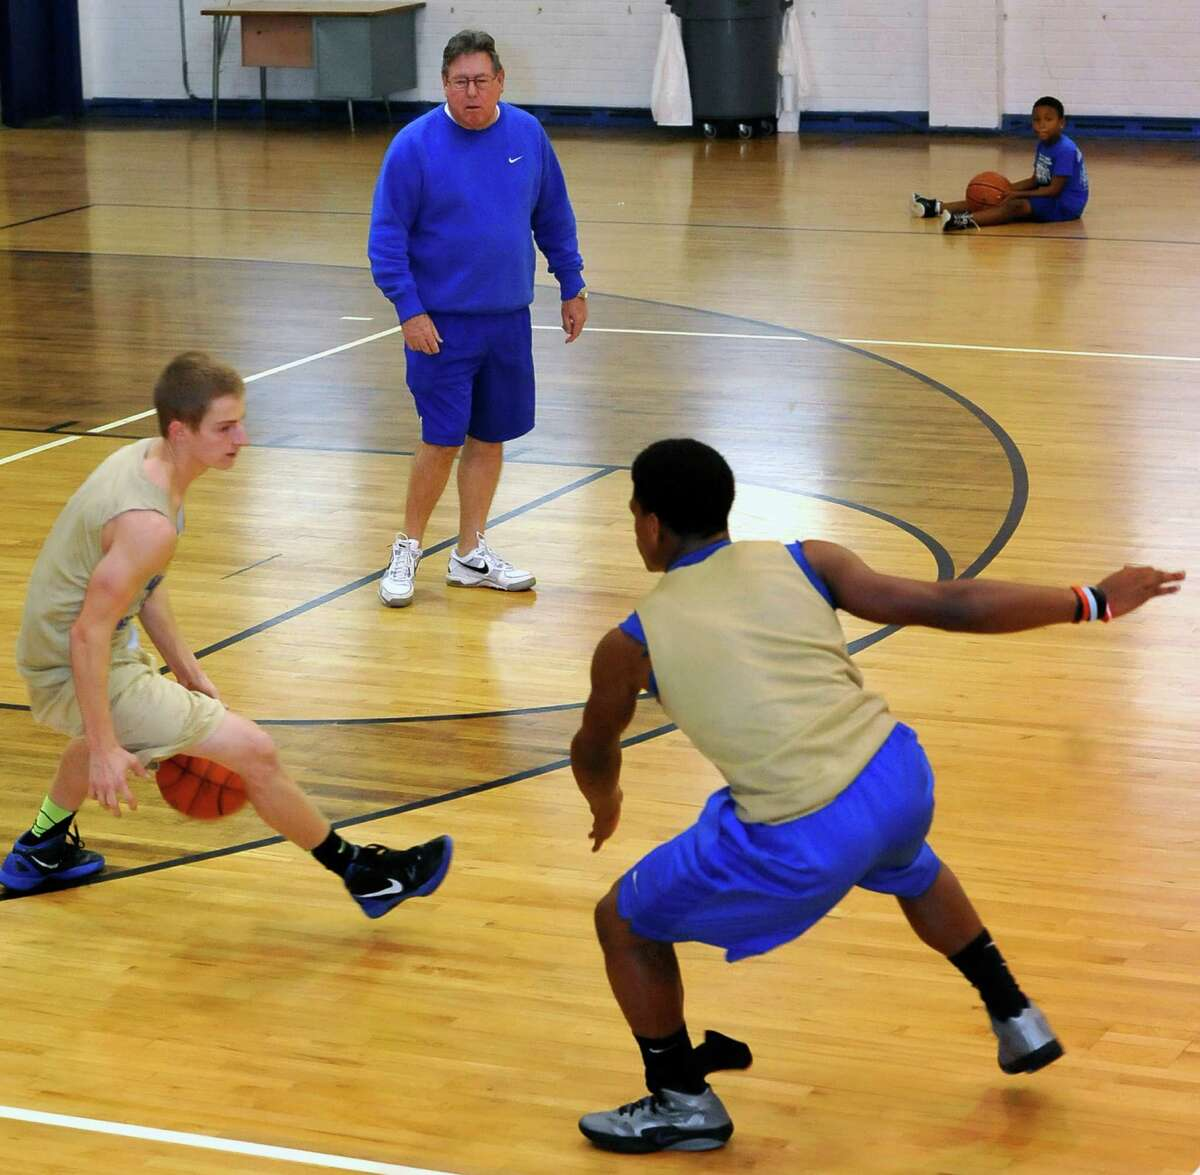 New head basketball coach at Hamshire-Fannett High School, Tommy Collins, top, held a practice on New Years Eve in an older gym while the boy's gym was having the floor re-finished. Dave Ryan/The Enterprise